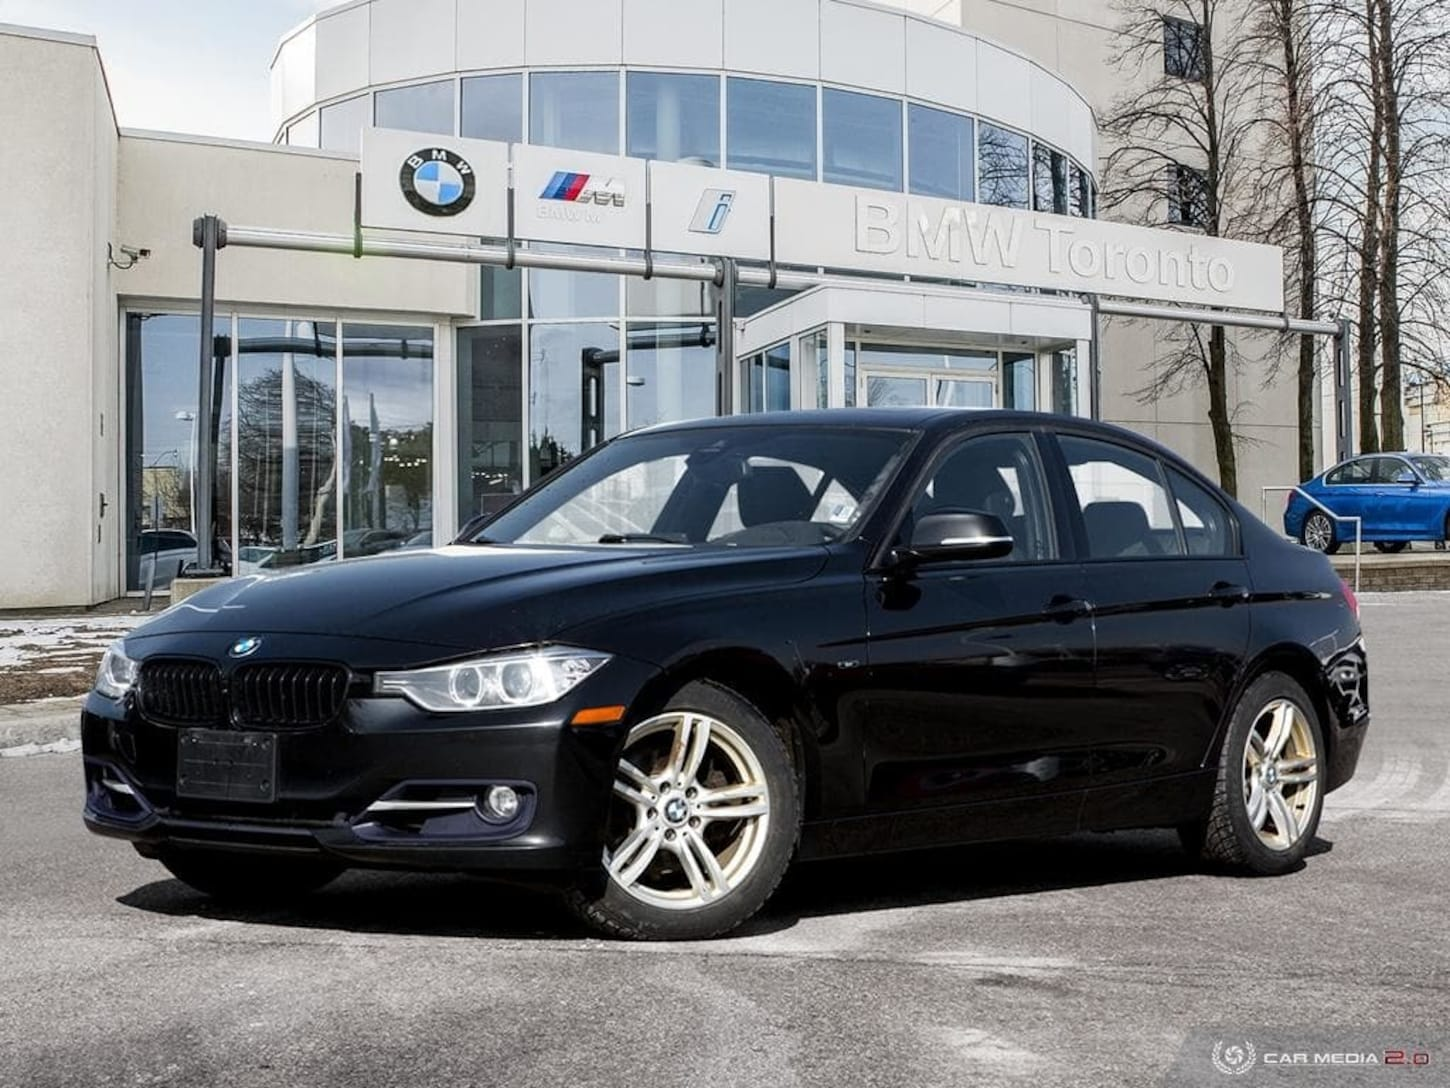 2013 BMW 328i Xdrive Sedan Sport Line AS-IS W/ Nav!